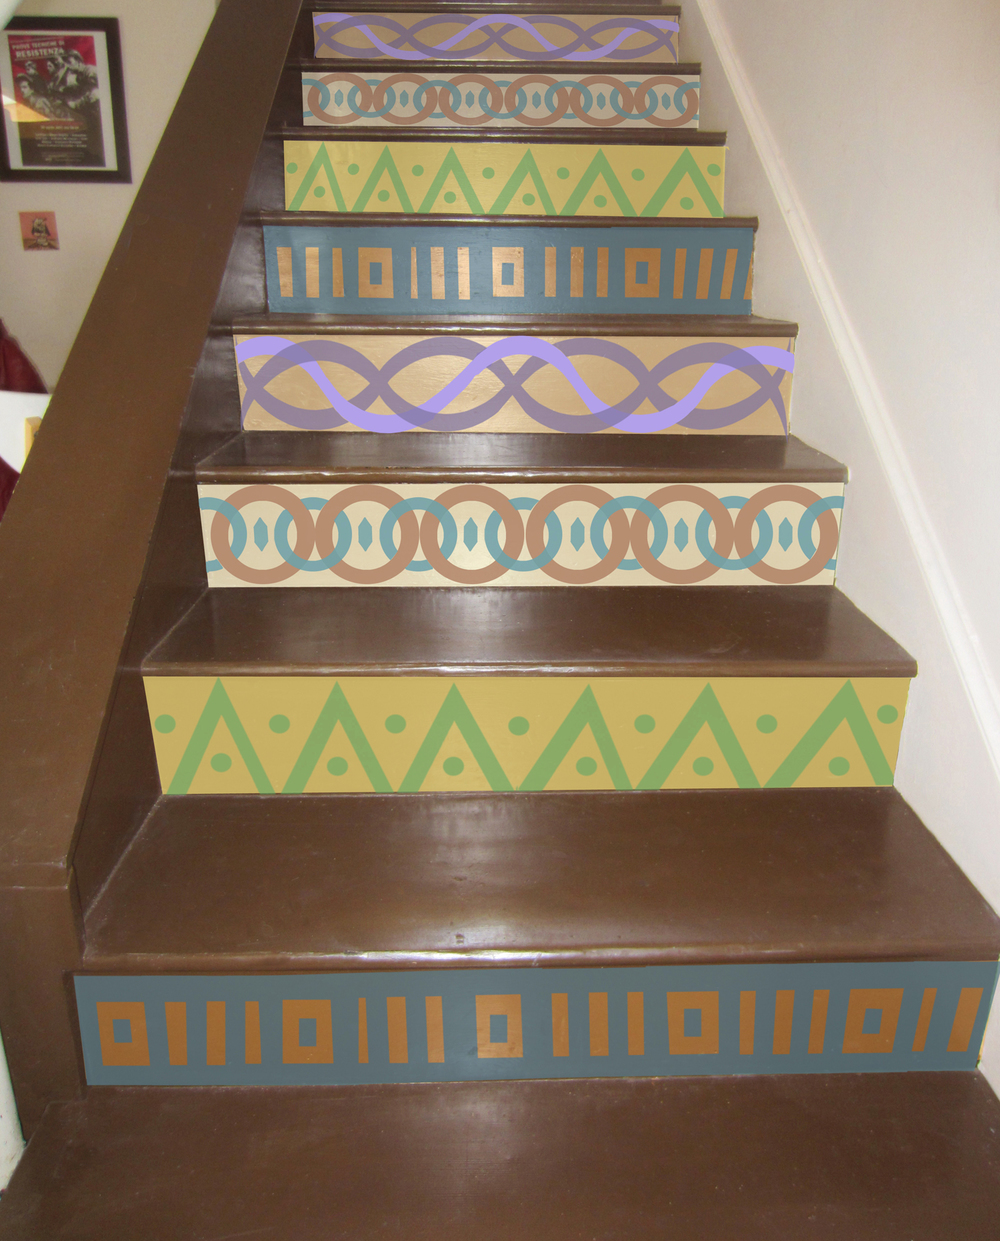 Stair riser design by Nathalie Tierce